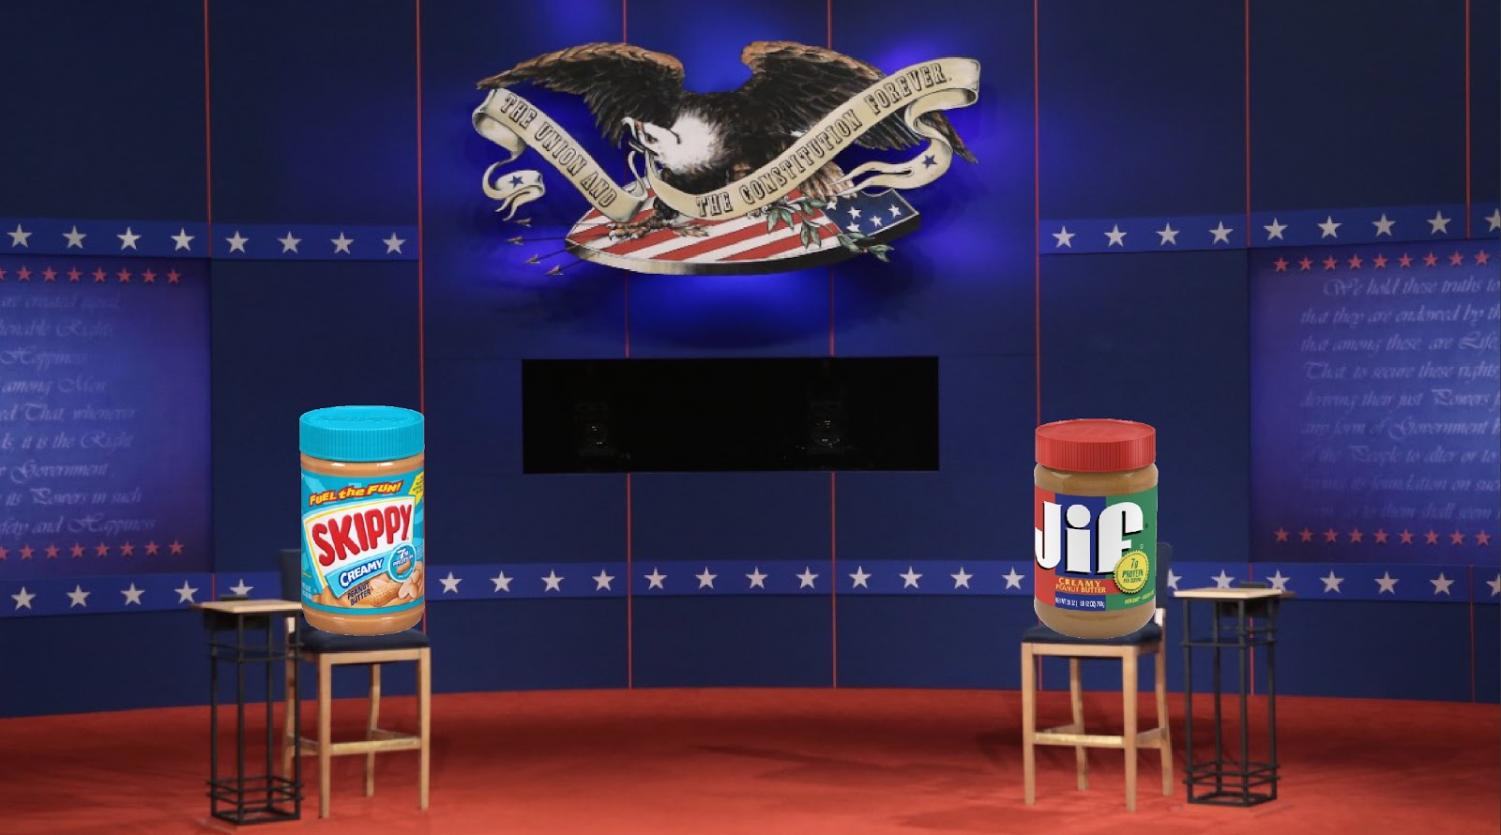 Skippy and Jif compete against each other in the 2019 mayor campaign.